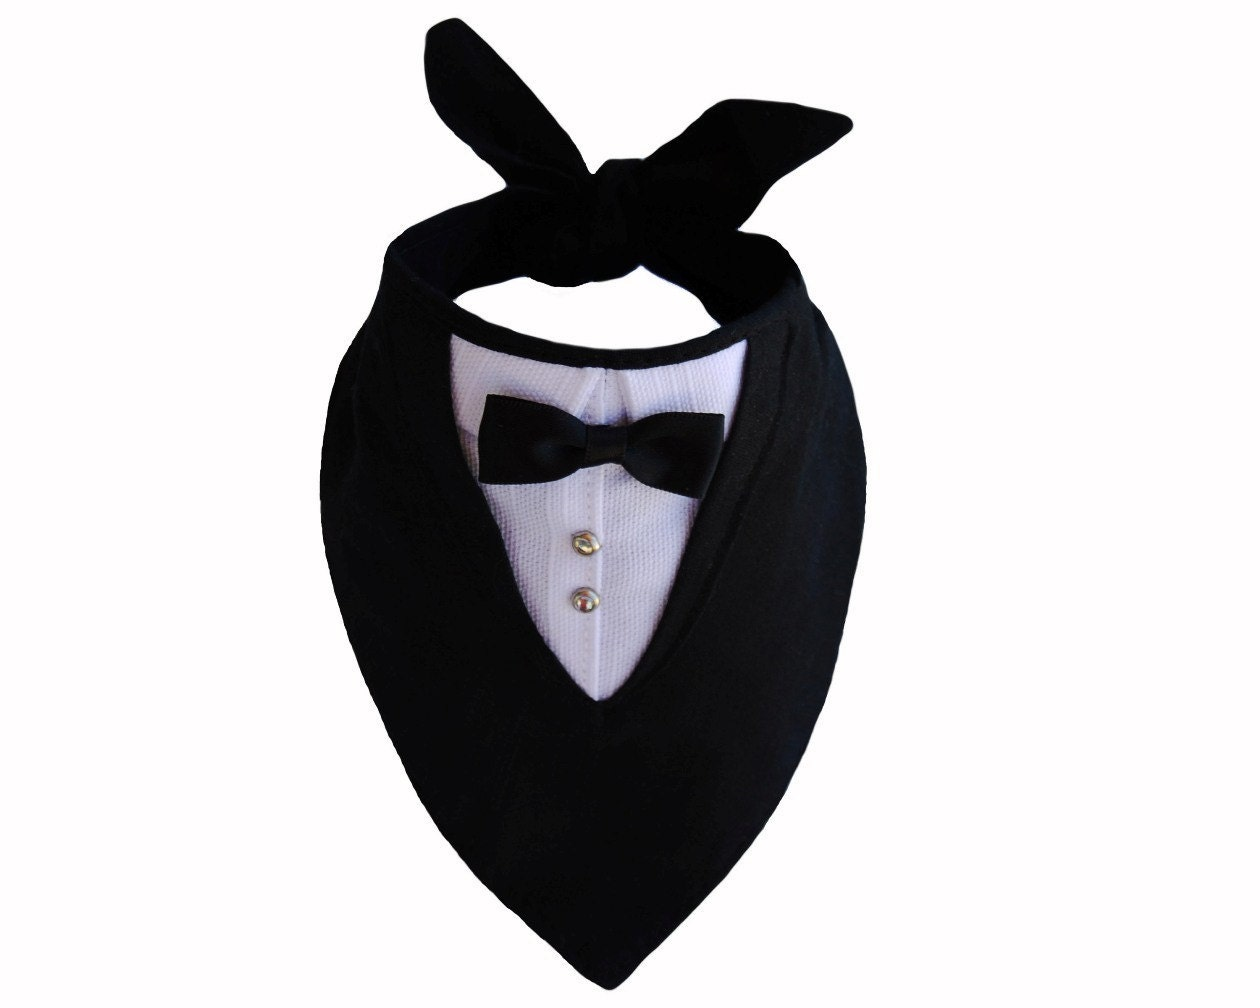 Medium Sized Tuxedo Bandana Dog Tux Pet Wedding